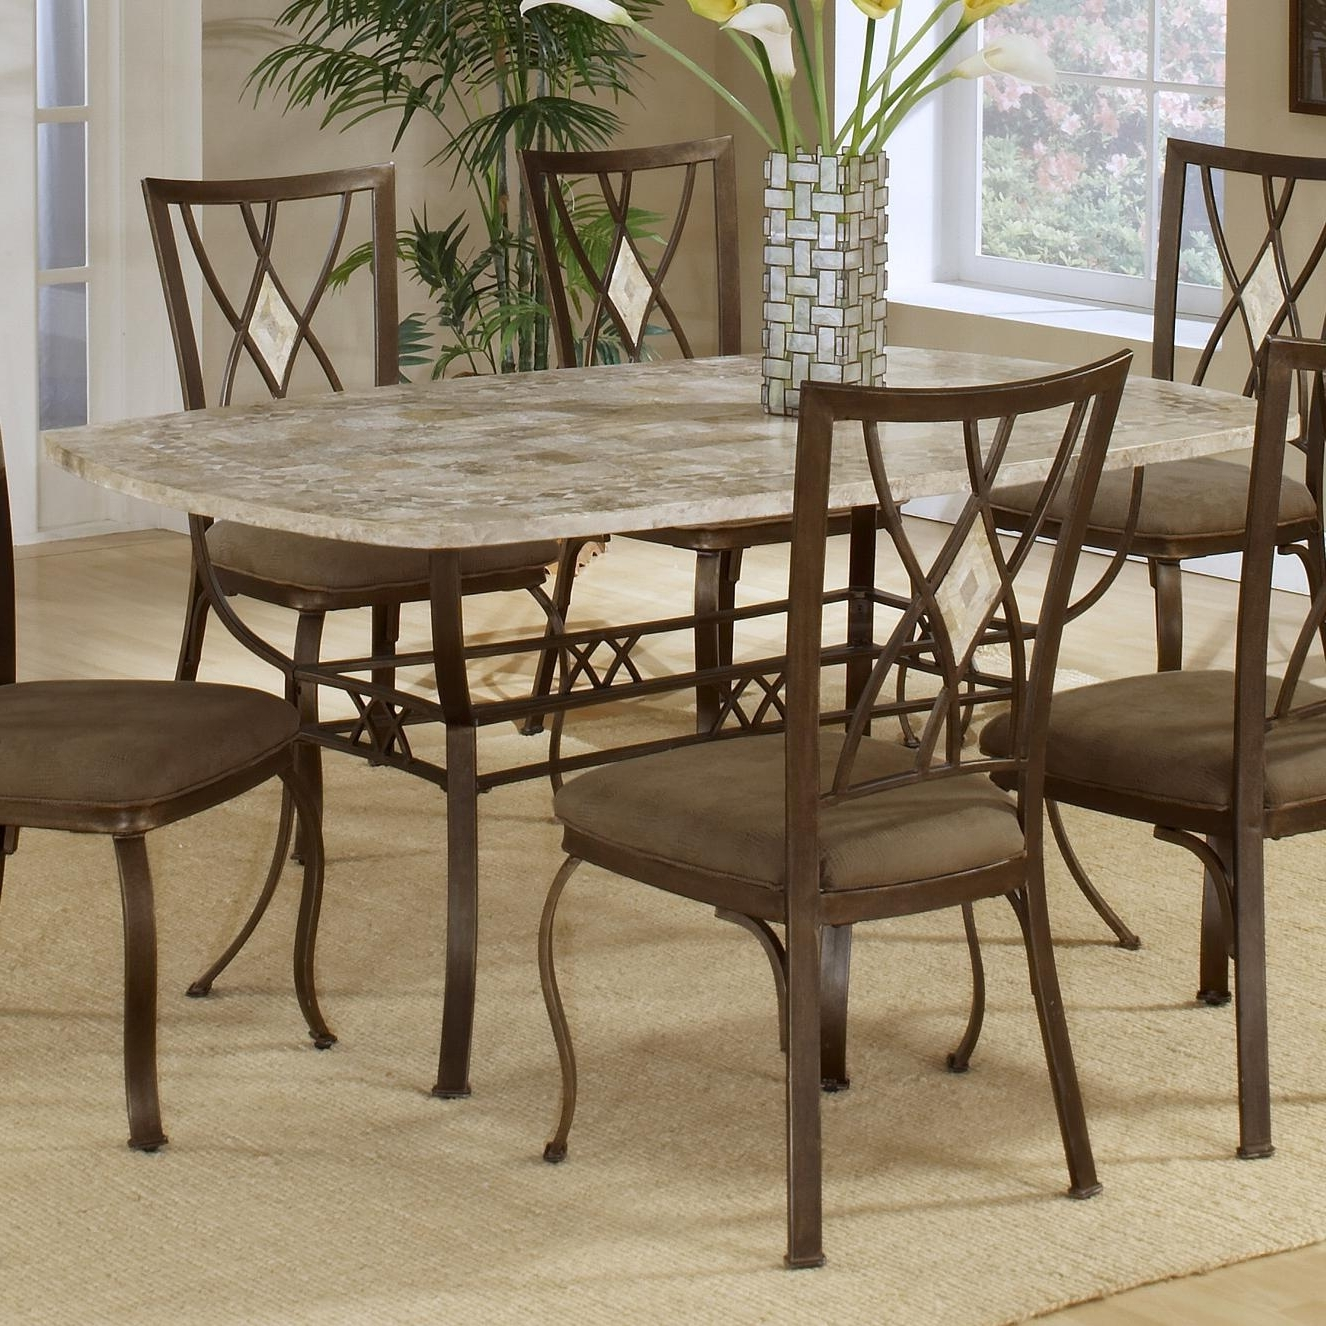 2018 Stone Dining Tables pertaining to Brookside Rectangle Dining Table With Fossil Stone Top